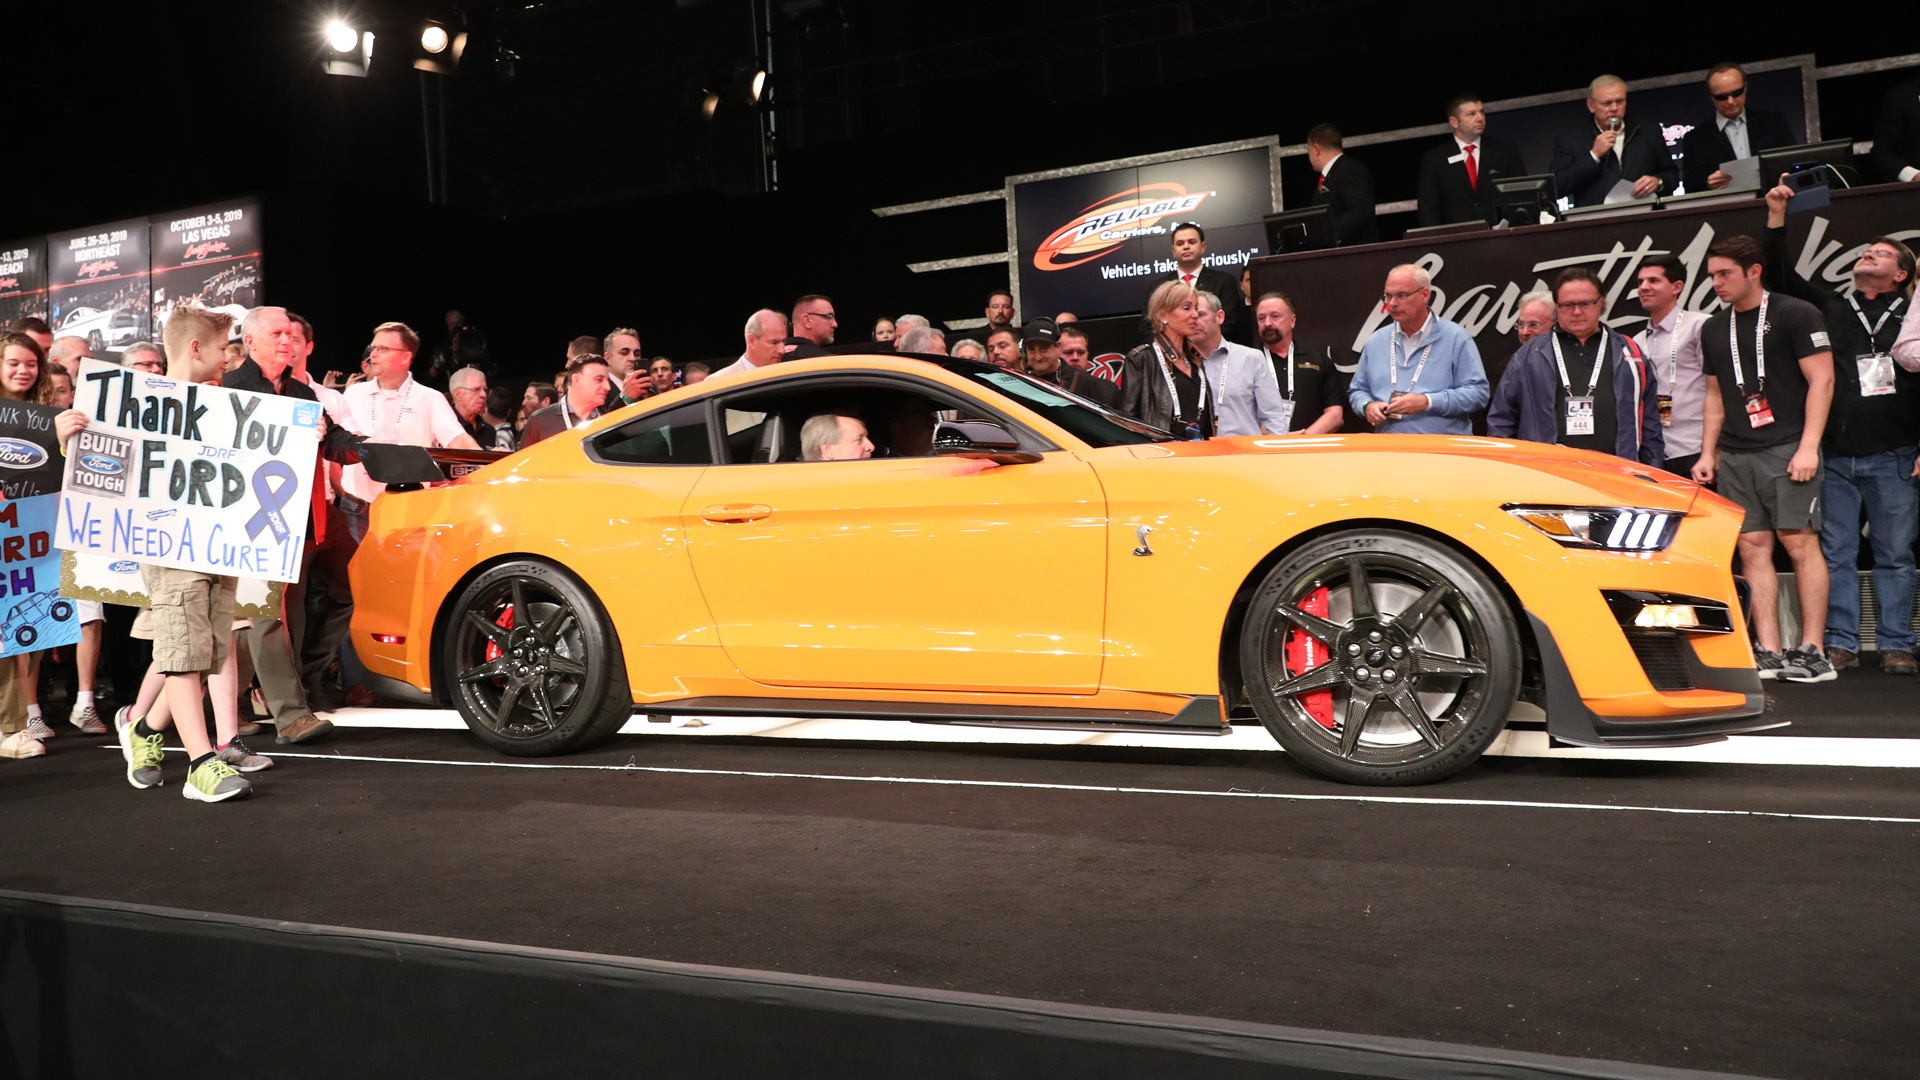 Auction of 2020 Ford Mustang Shelby GT500 with VIN ending in 001 on January 18, 2019